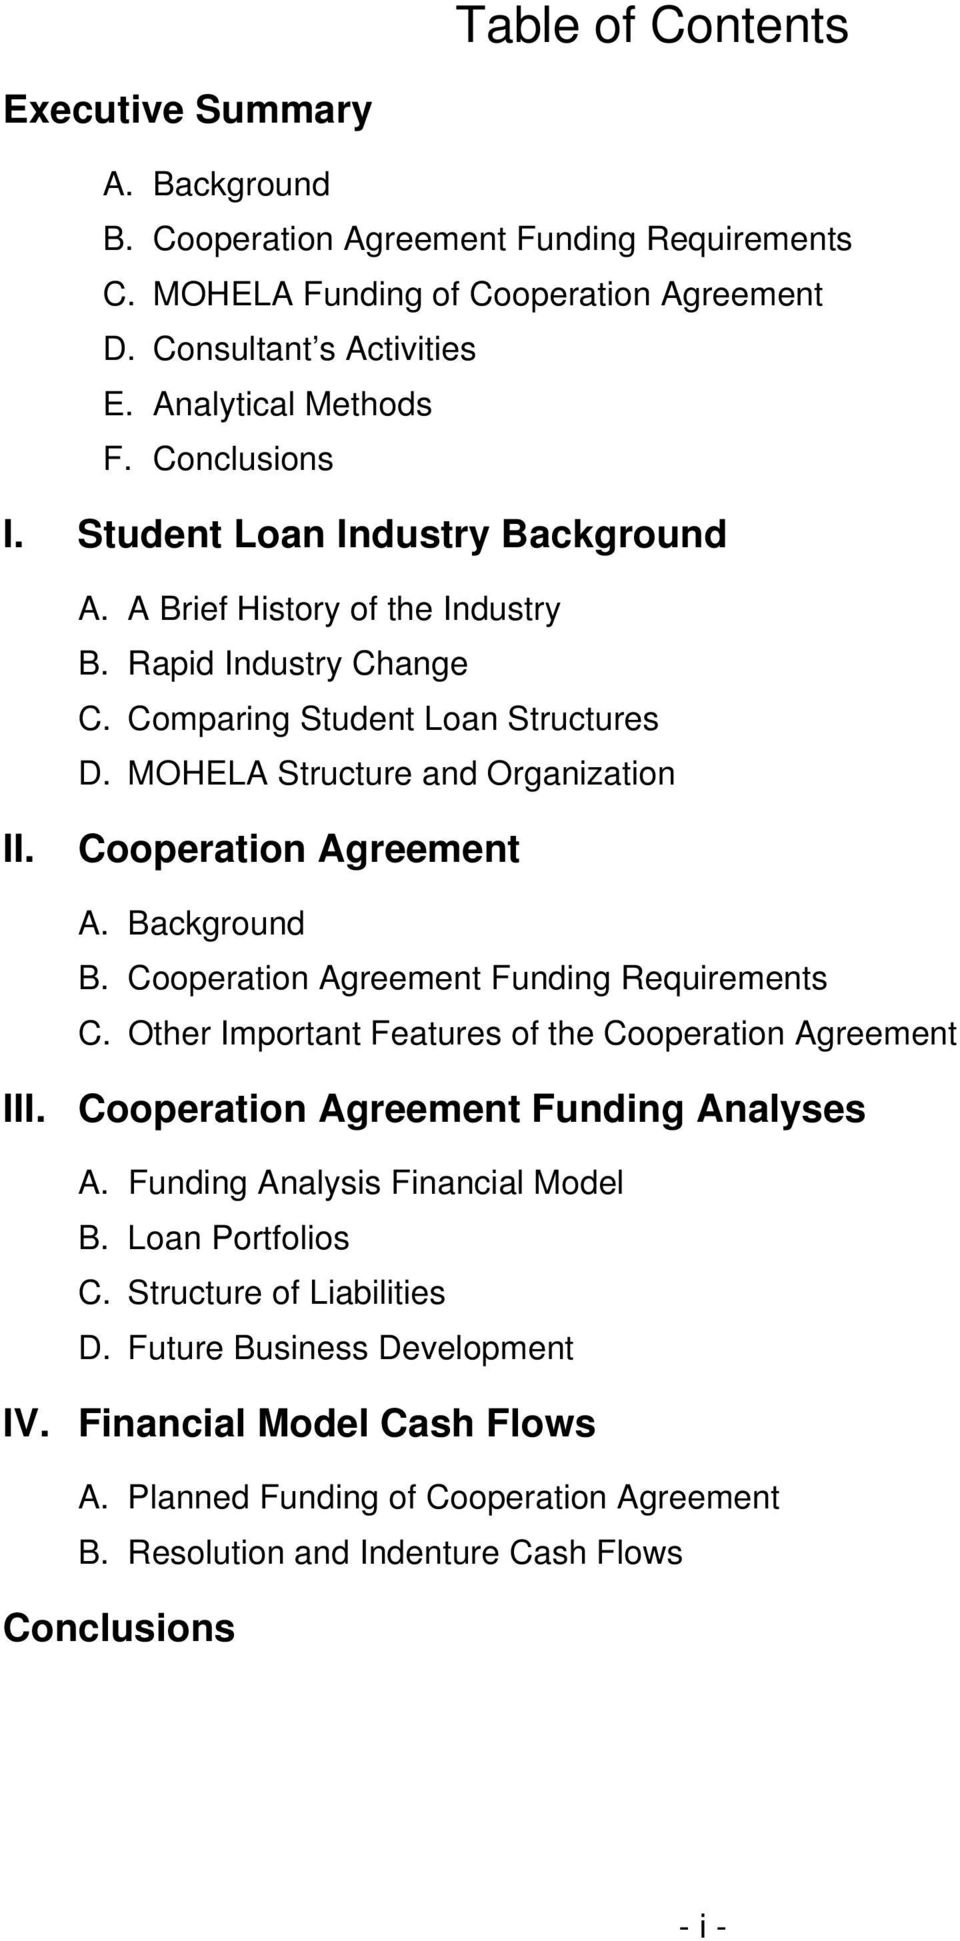 Fohf consolidating student loans